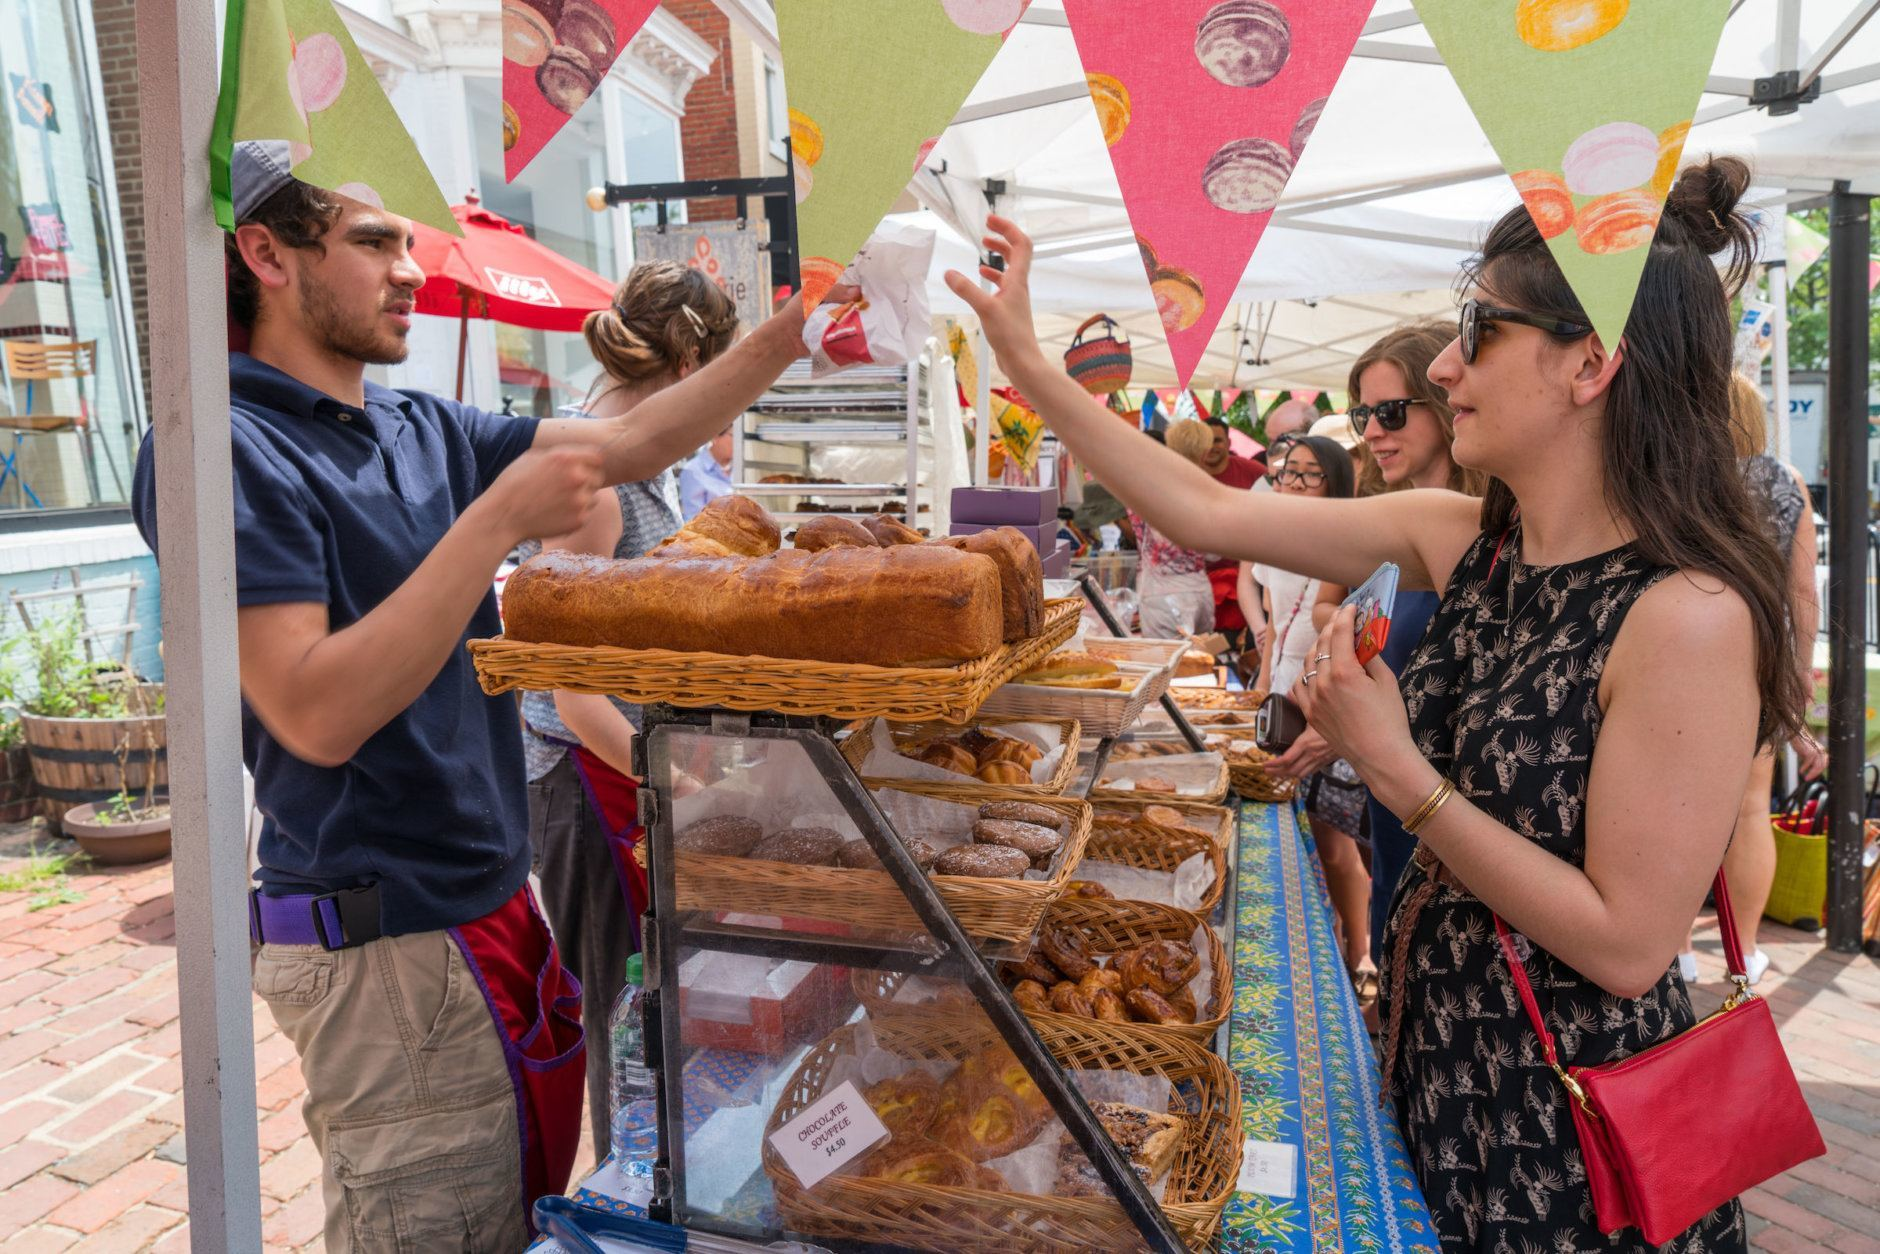 The 16th-annual Georgetown French Market is Friday through Sunday. It's open from 10 a.m. to 5 p.m. both Friday and Saturday and from noon until 5 p.m. on Sunday. (Courtesy Georgetown BID)